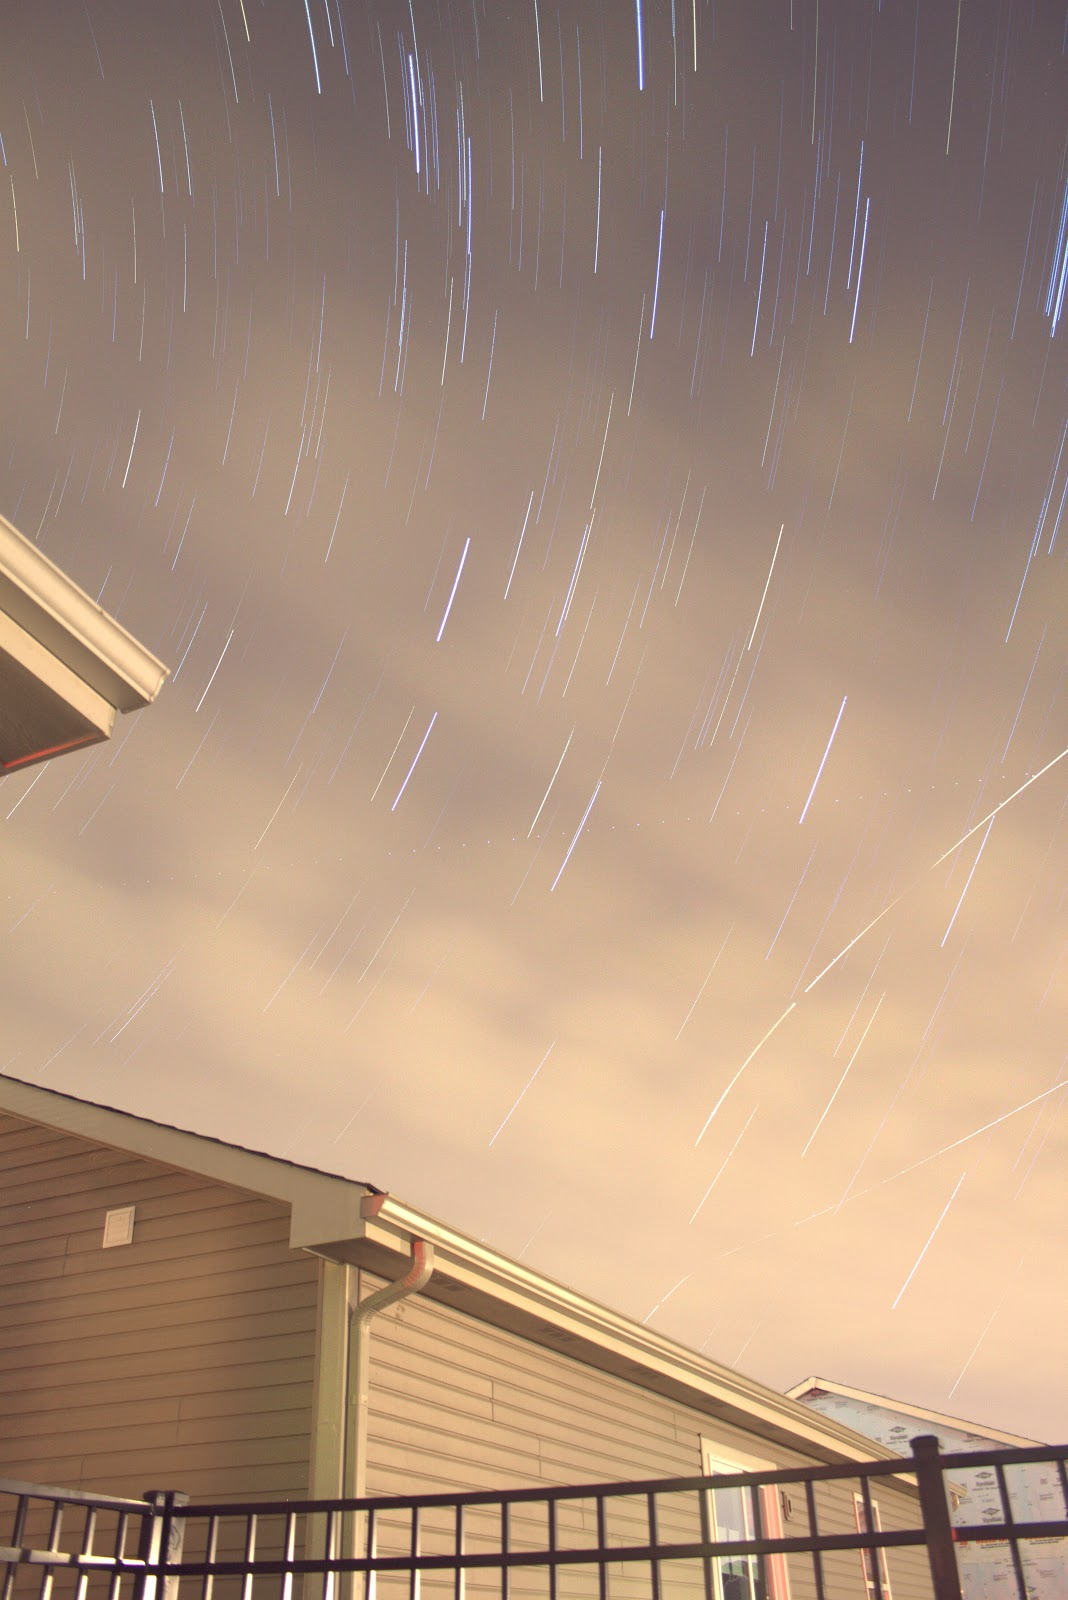 cloudy star trails over house